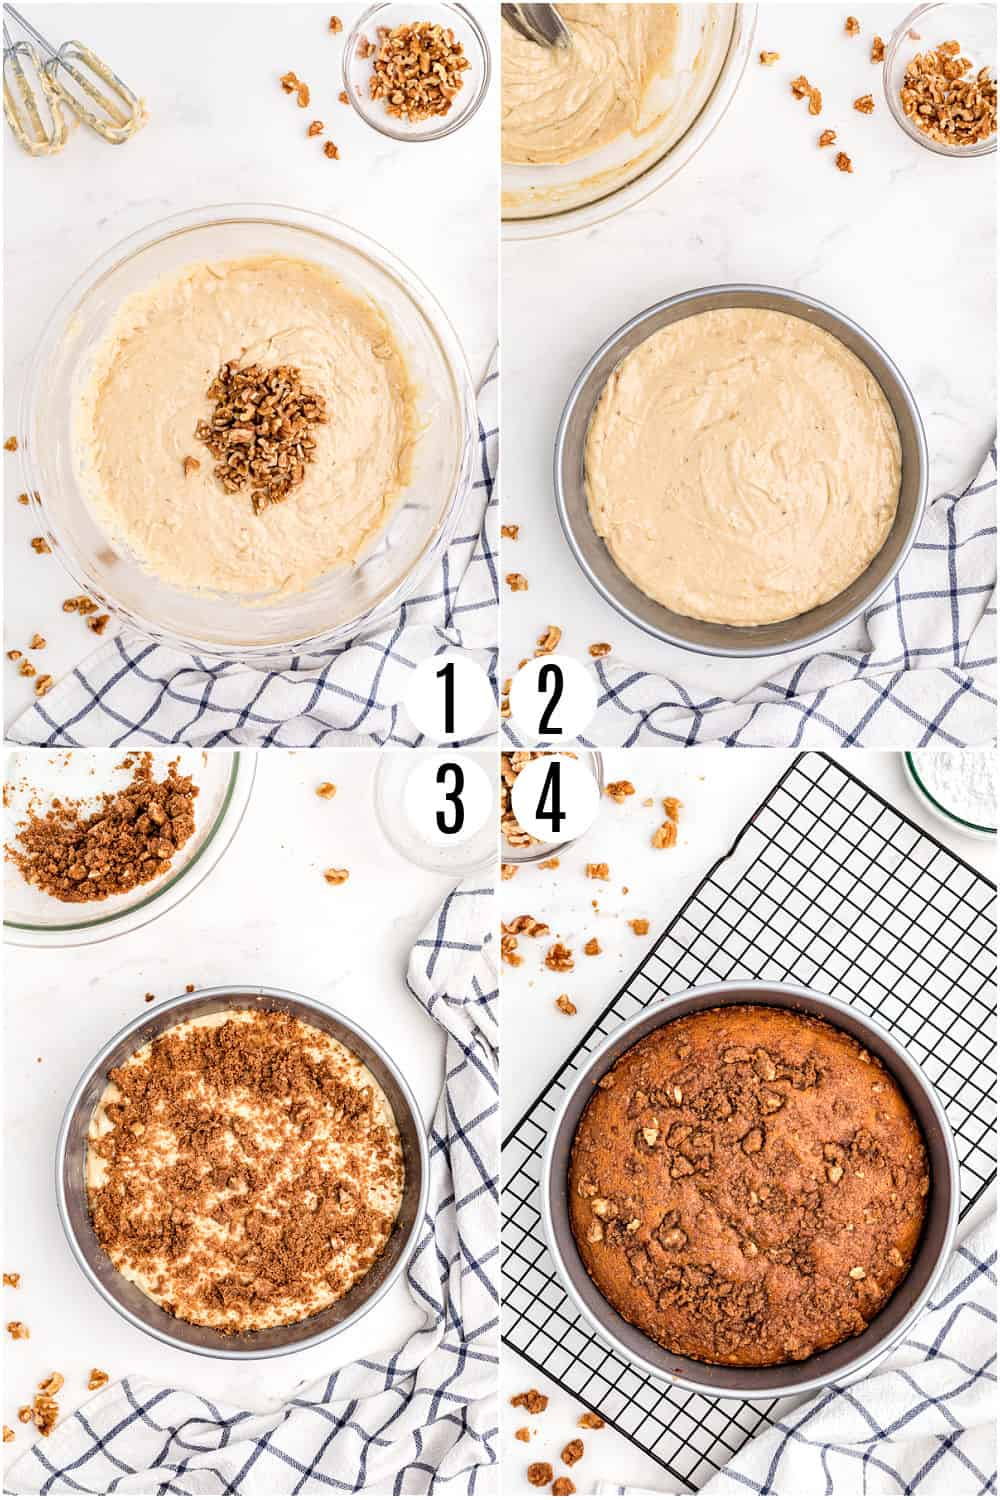 Step by step photos showing how to make banana coffee cake.